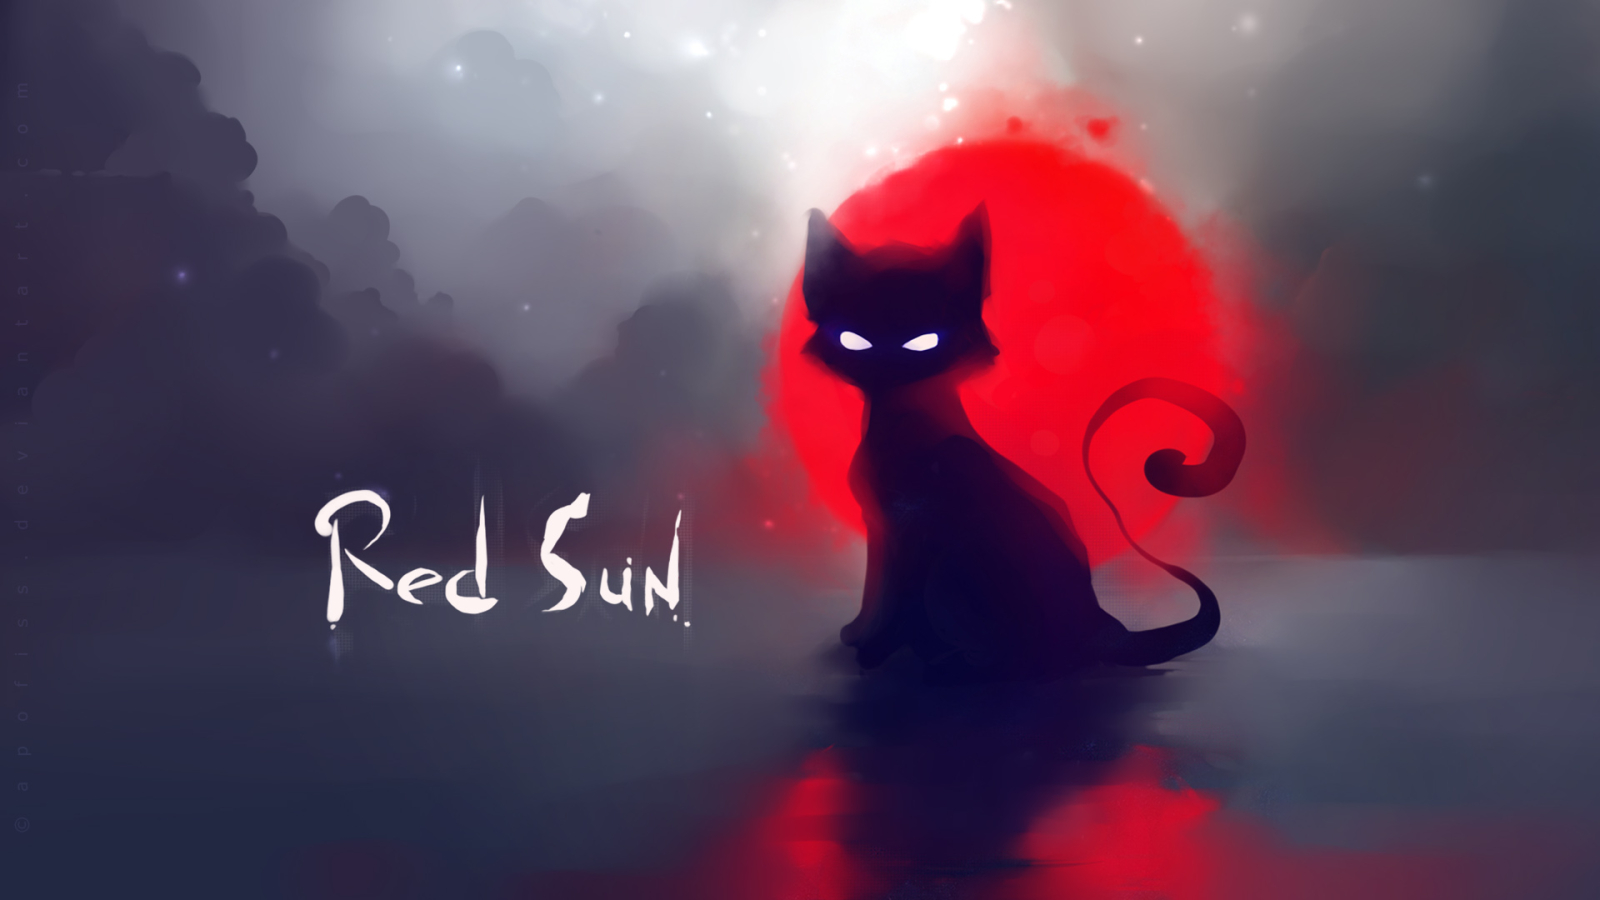 Red Sun for 1600 x 900 HDTV resolution